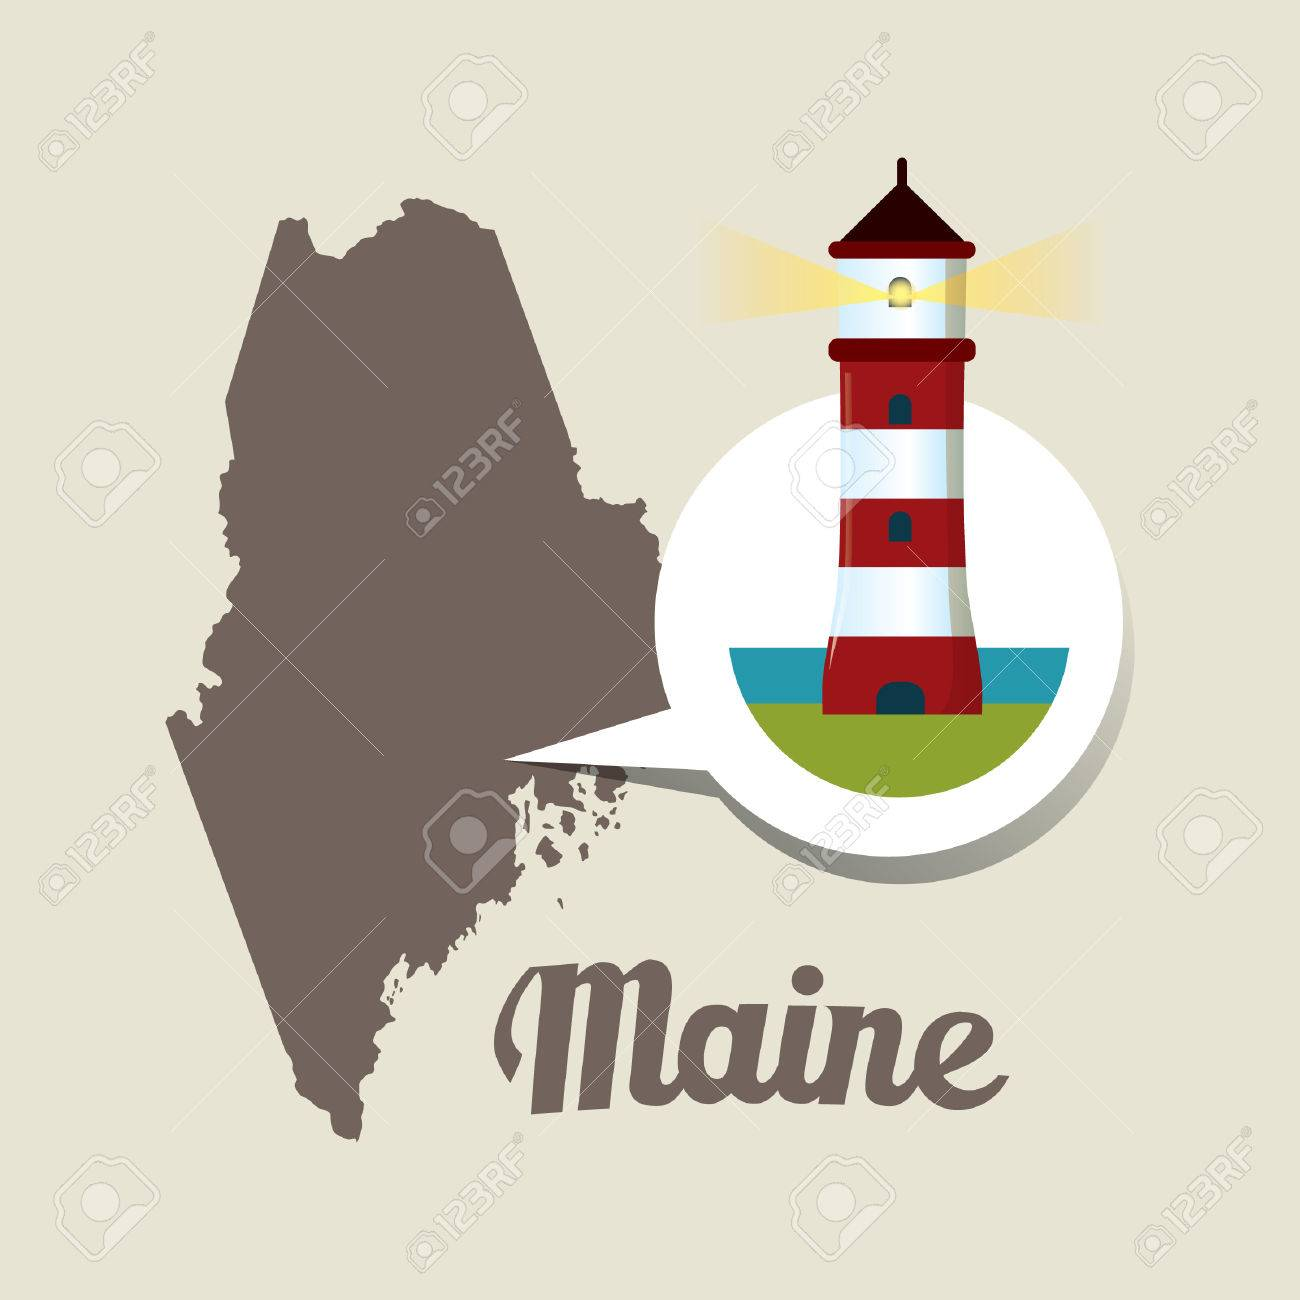 Maine map with quoddy lighthouse icon on massachusetts lighthouse map, georgia lighthouse map, bay of fundy lighthouse map, michigan lighthouse map, nc lighthouse map, washington lighthouse map, scituate lighthouse map, sullivan's island lighthouse map, mount desert island acadia national park map, canada lighthouse map, martha's vineyard lighthouse map, ontario lighthouse map, maryland lighthouse map, oahu lighthouse map, nova scotia lighthouses map, lighthouse friends map, maine tourist attractions, rhode island lighthouse map, maine coast lighthouses, seattle lighthouse map,